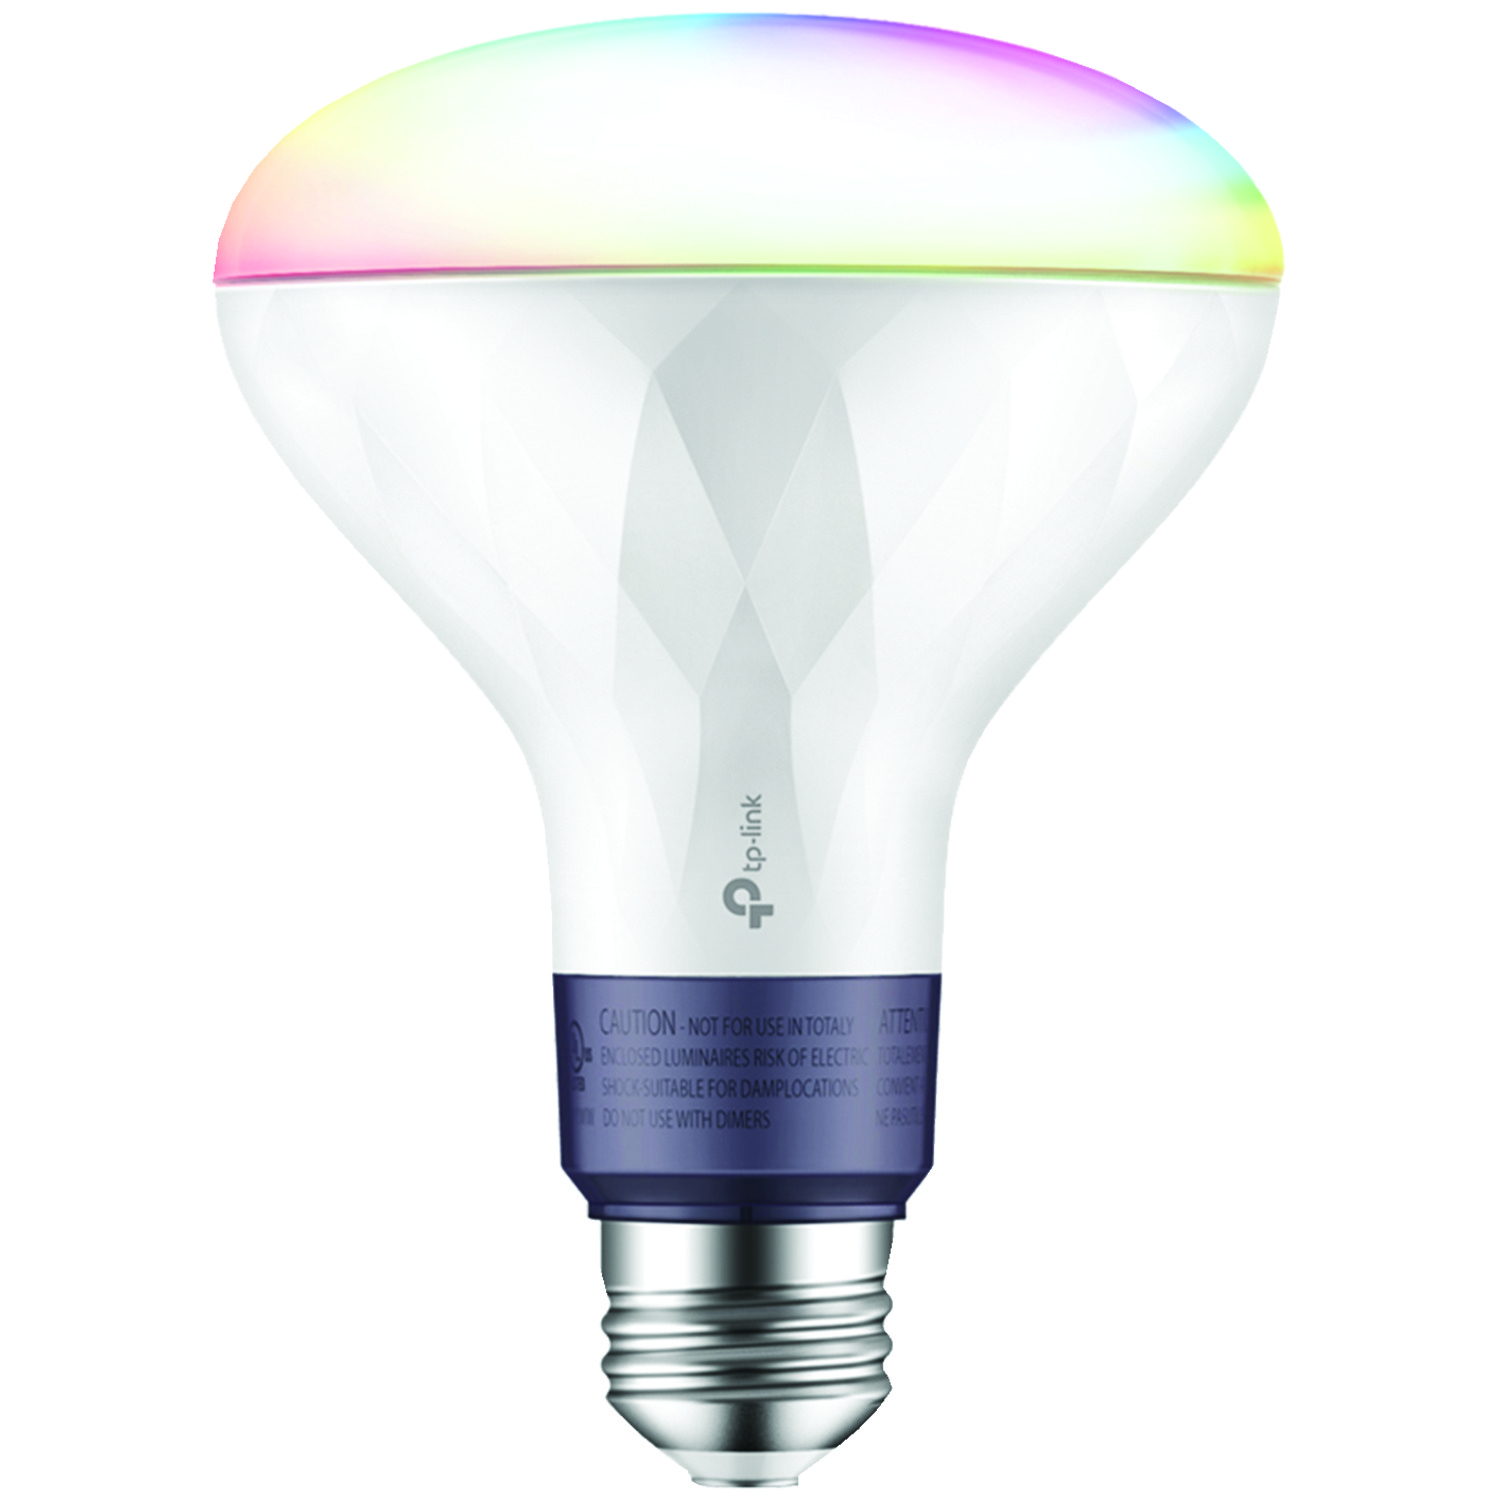 Image for Tp-Link Clr Chng Wifi Smrt Bulb from Circuit City